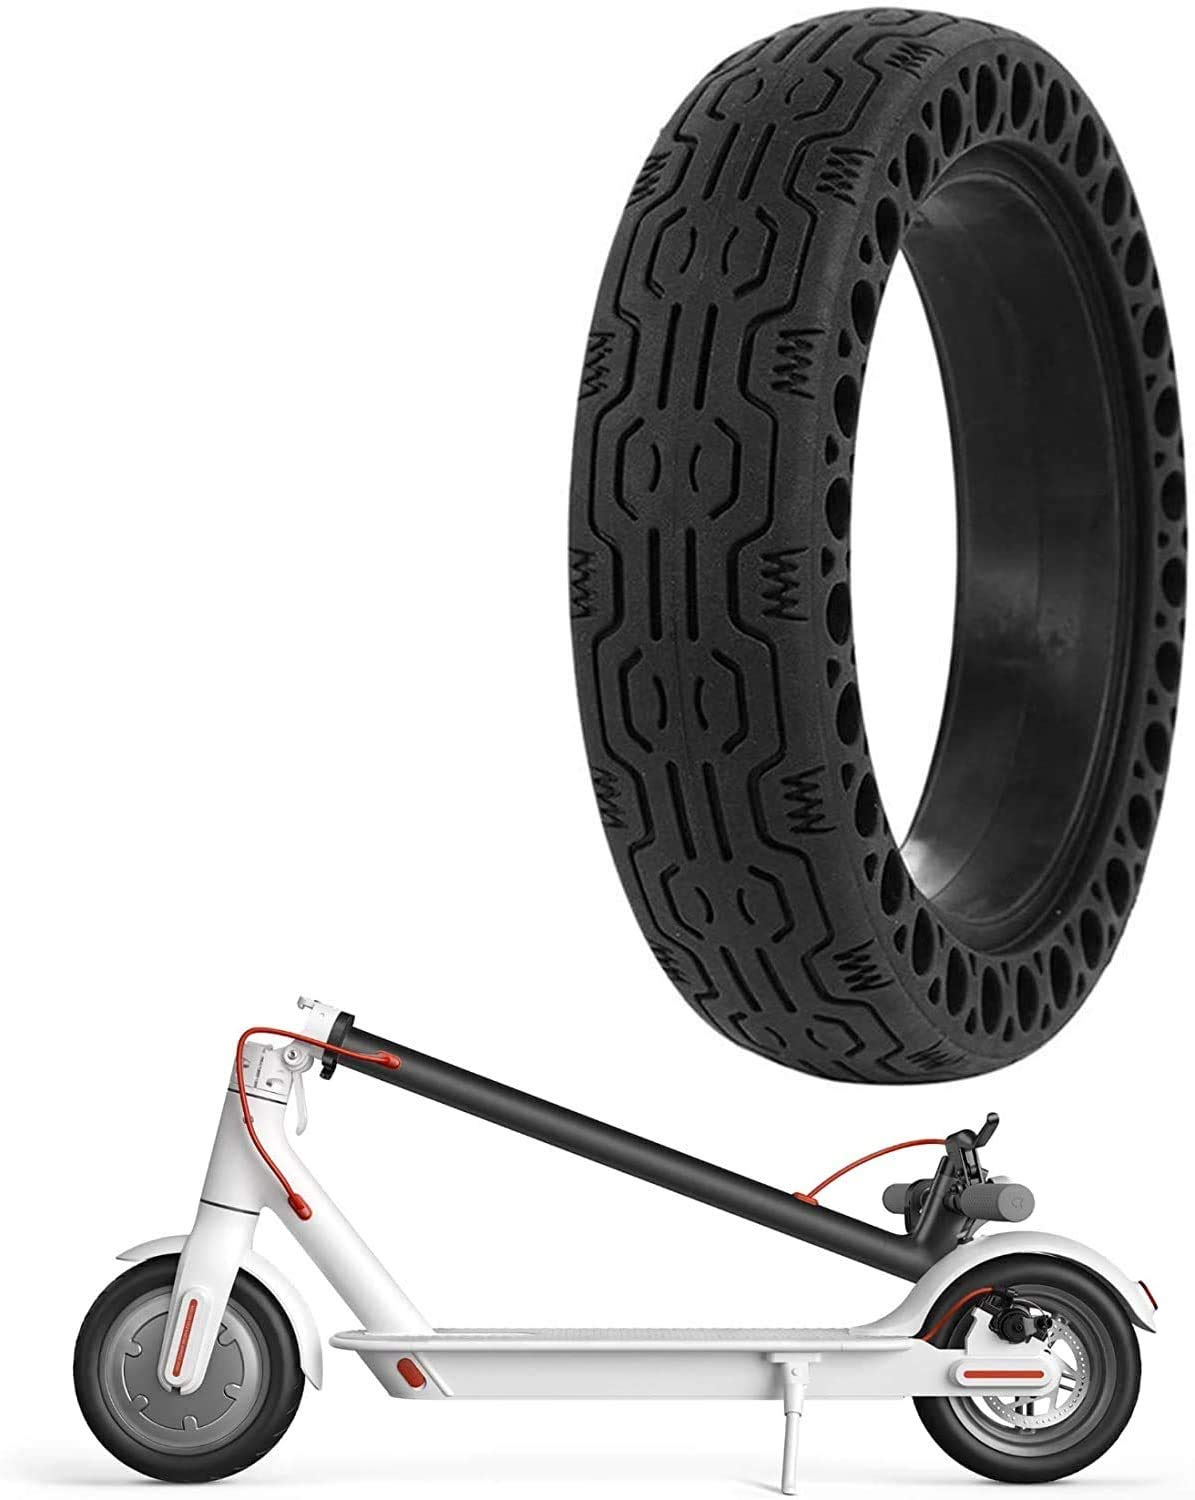 GLDYTIMES FEC 8.5 Inch Solid Tire Honeycomb Wheel Replacement for Electric Scooter Xiaomi Mi m365 / gotrax gxl V2 / Hover-1 Explosion-Proof and Comfortable Scooter Wheel's Replacement